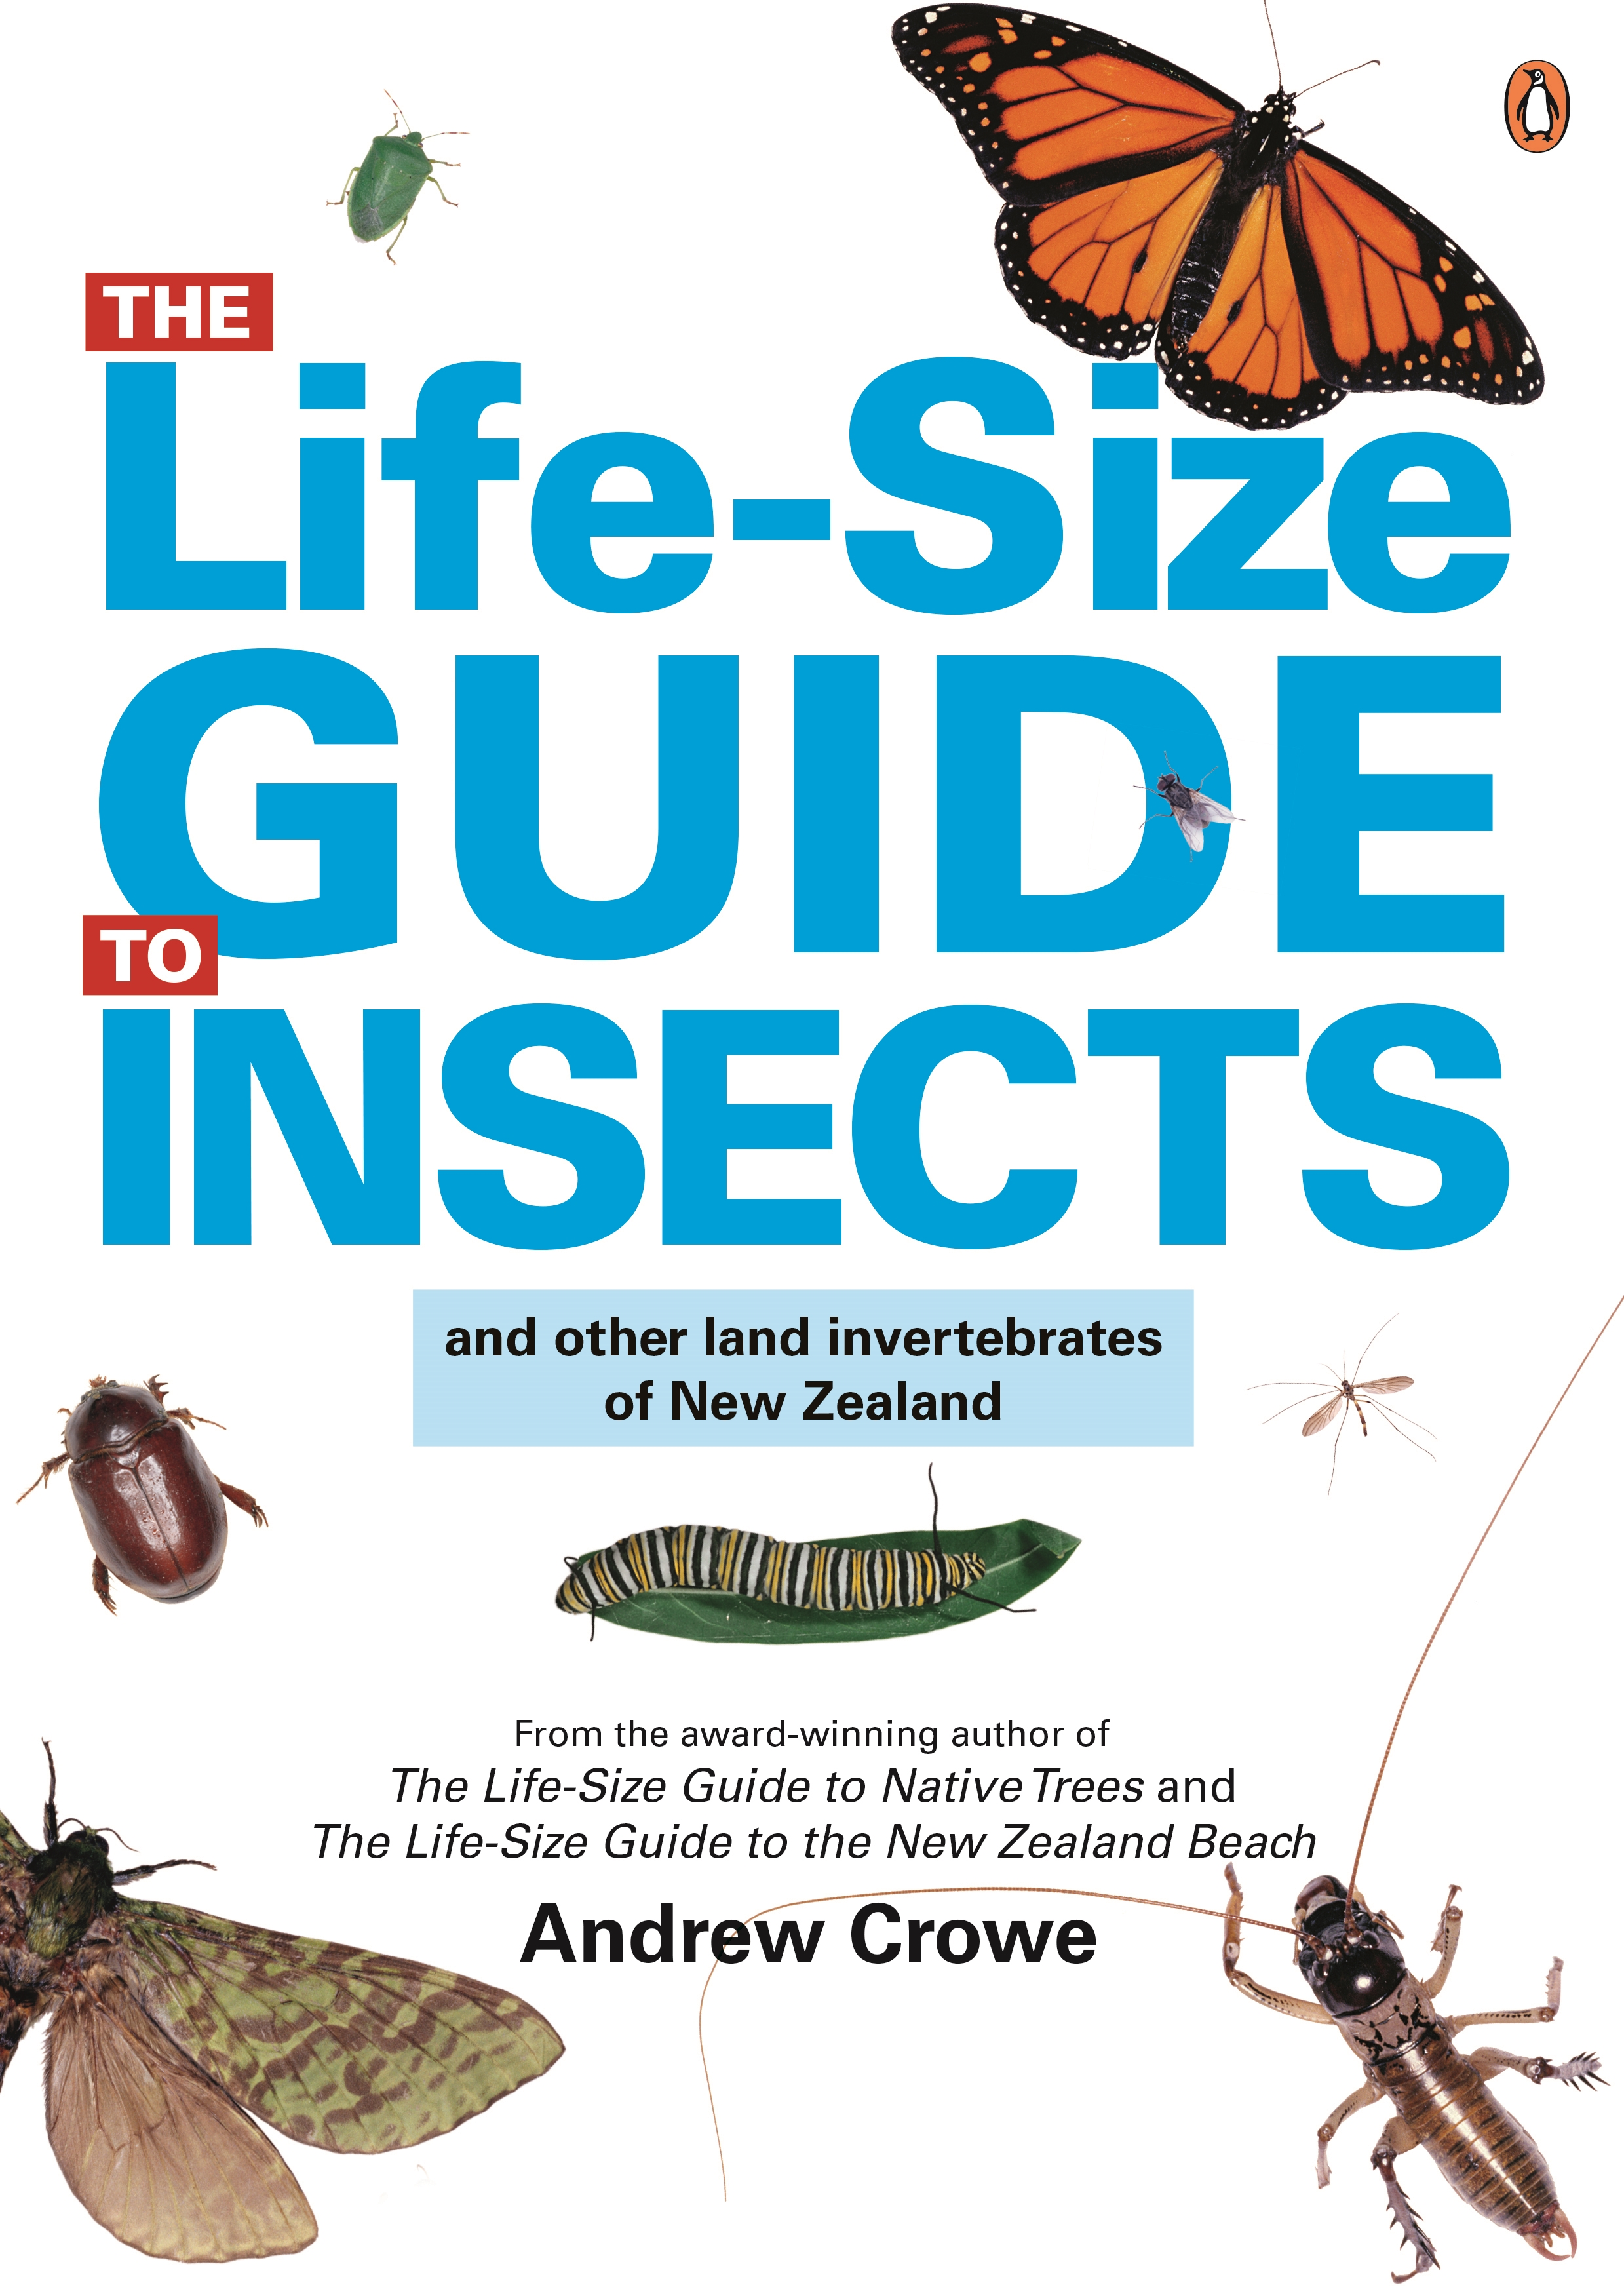 The Life Size Guide to Insects & Other Land Invertebrates of New Zealand